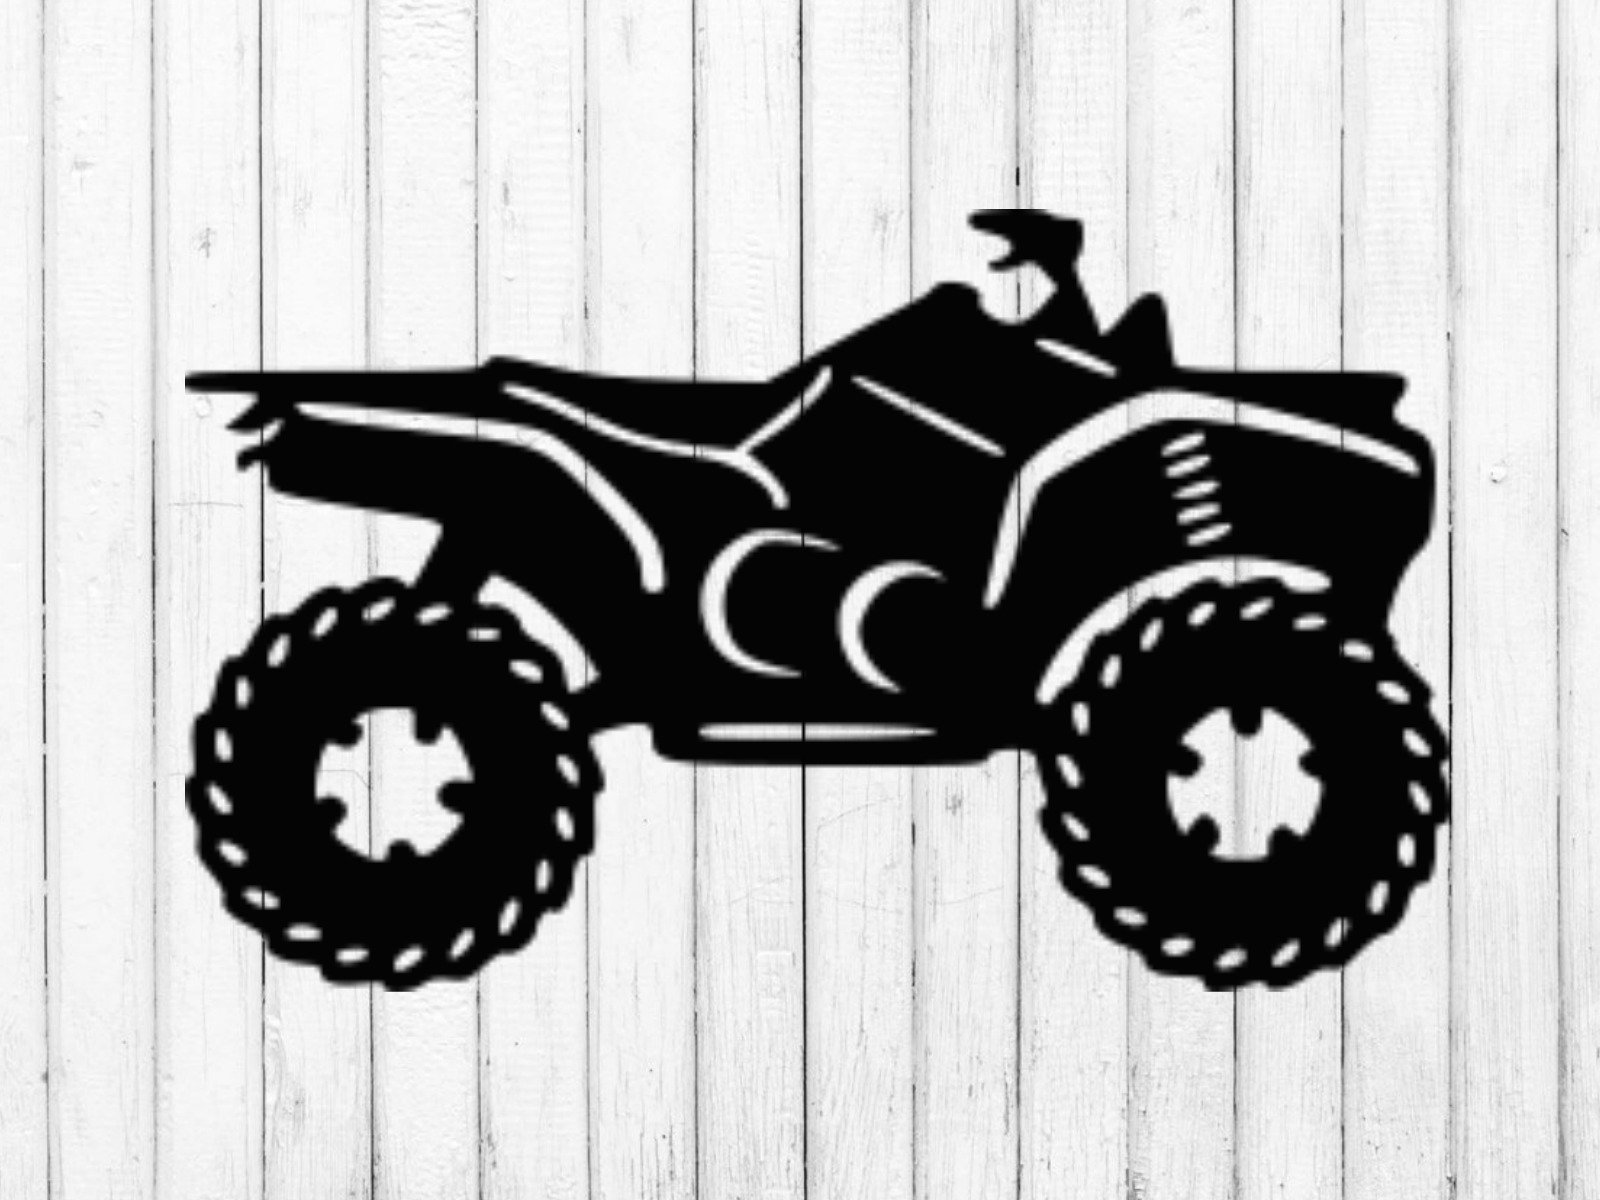 Atv front profile images clipart clipart freeuse download Atv drawing free download on ayoqq cliparts clipart freeuse download